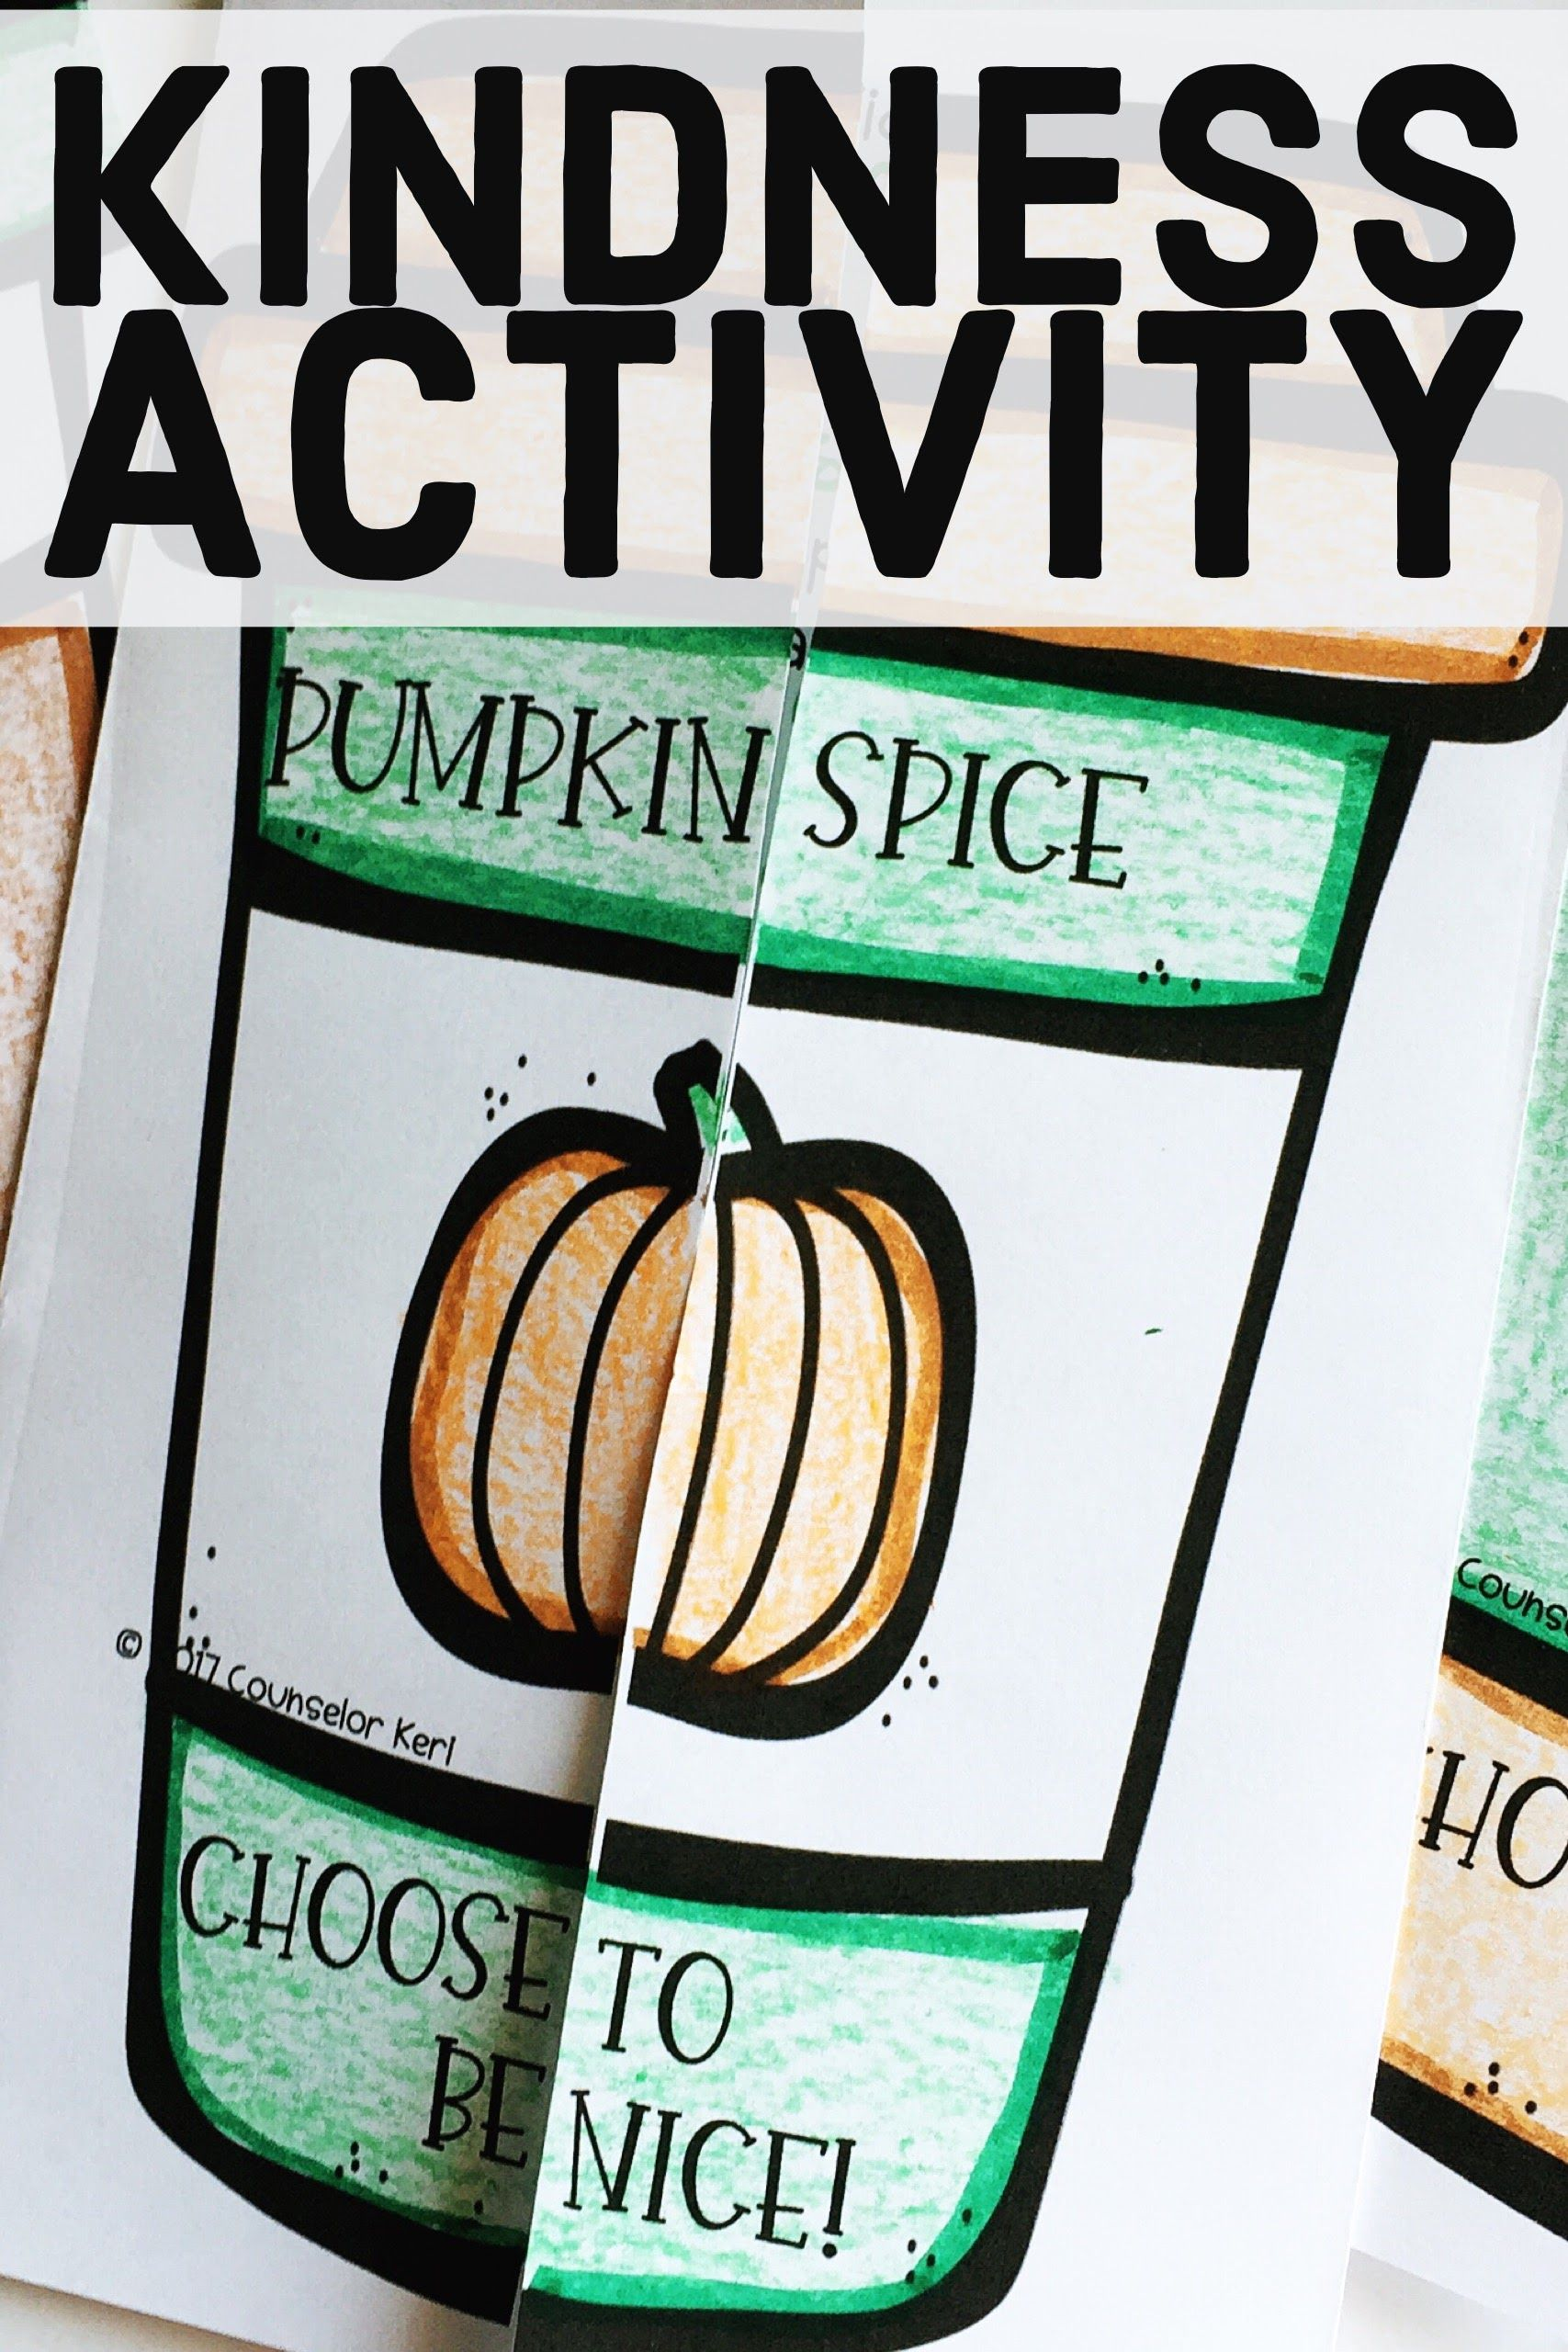 Pumpkin Spice Fall Kindness Activity For Elementary School